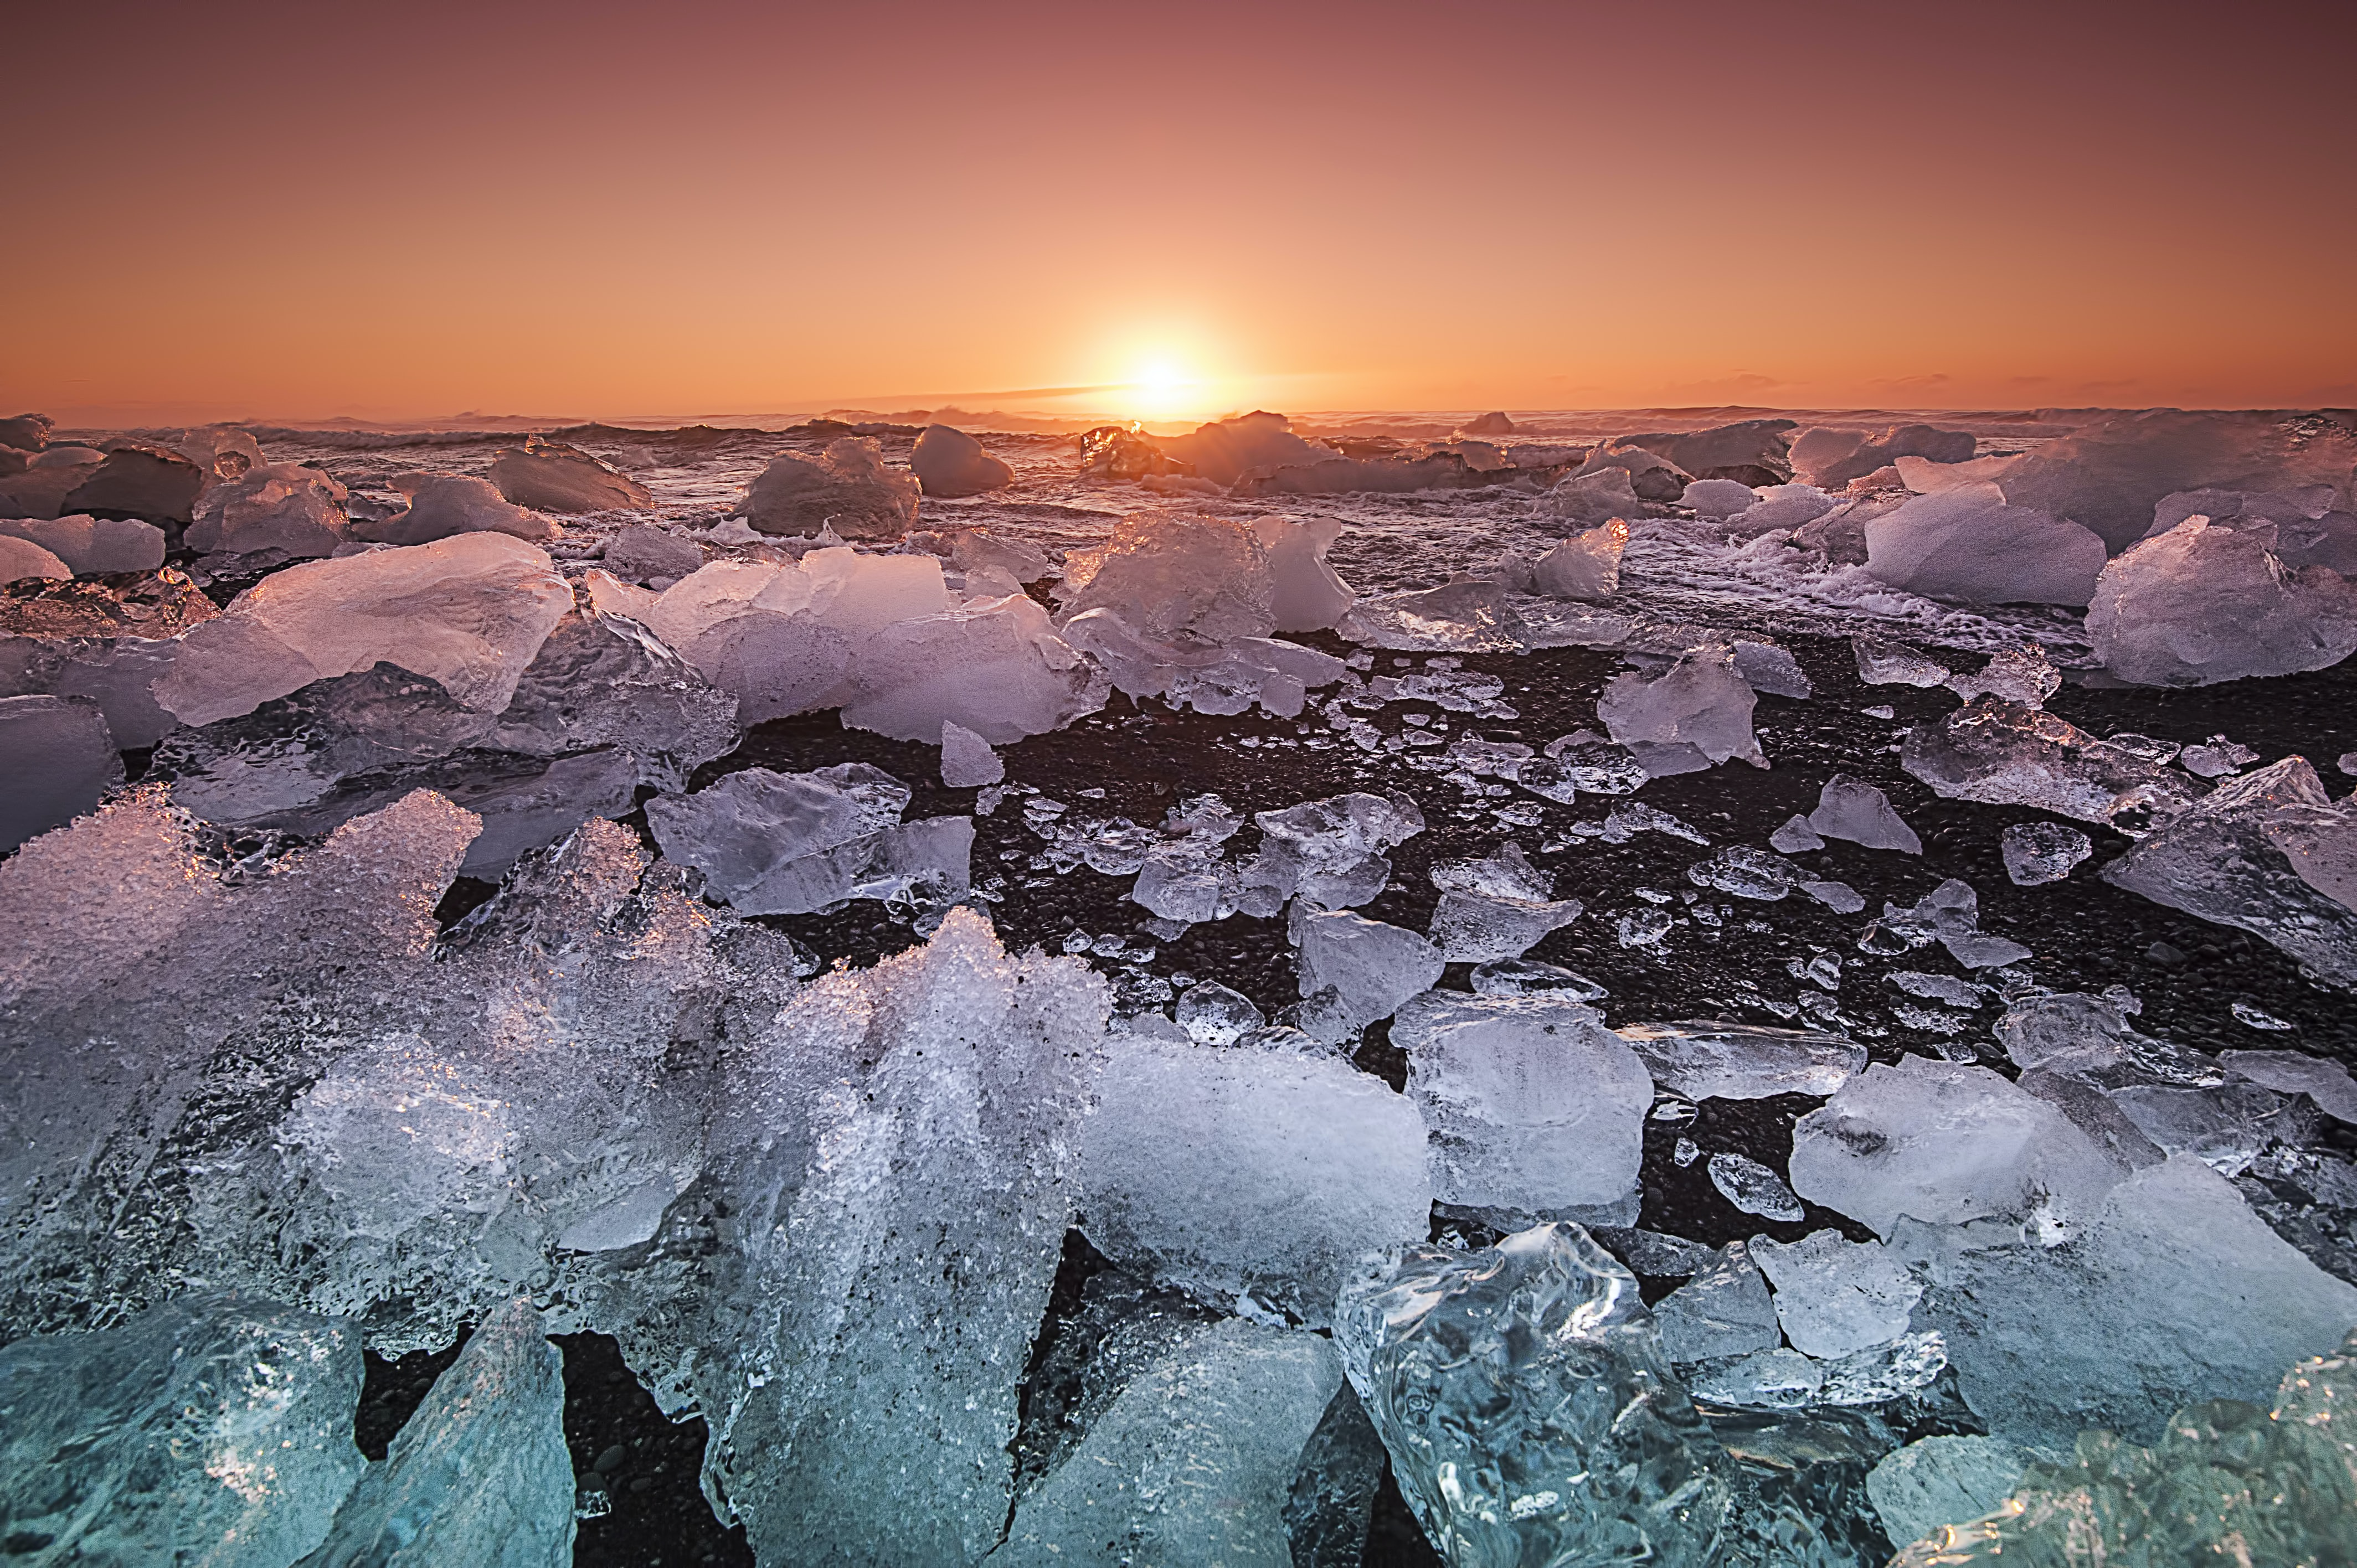 Ice breaks up on the shoreline at sunset against an orange sky and calm water in Iceland.